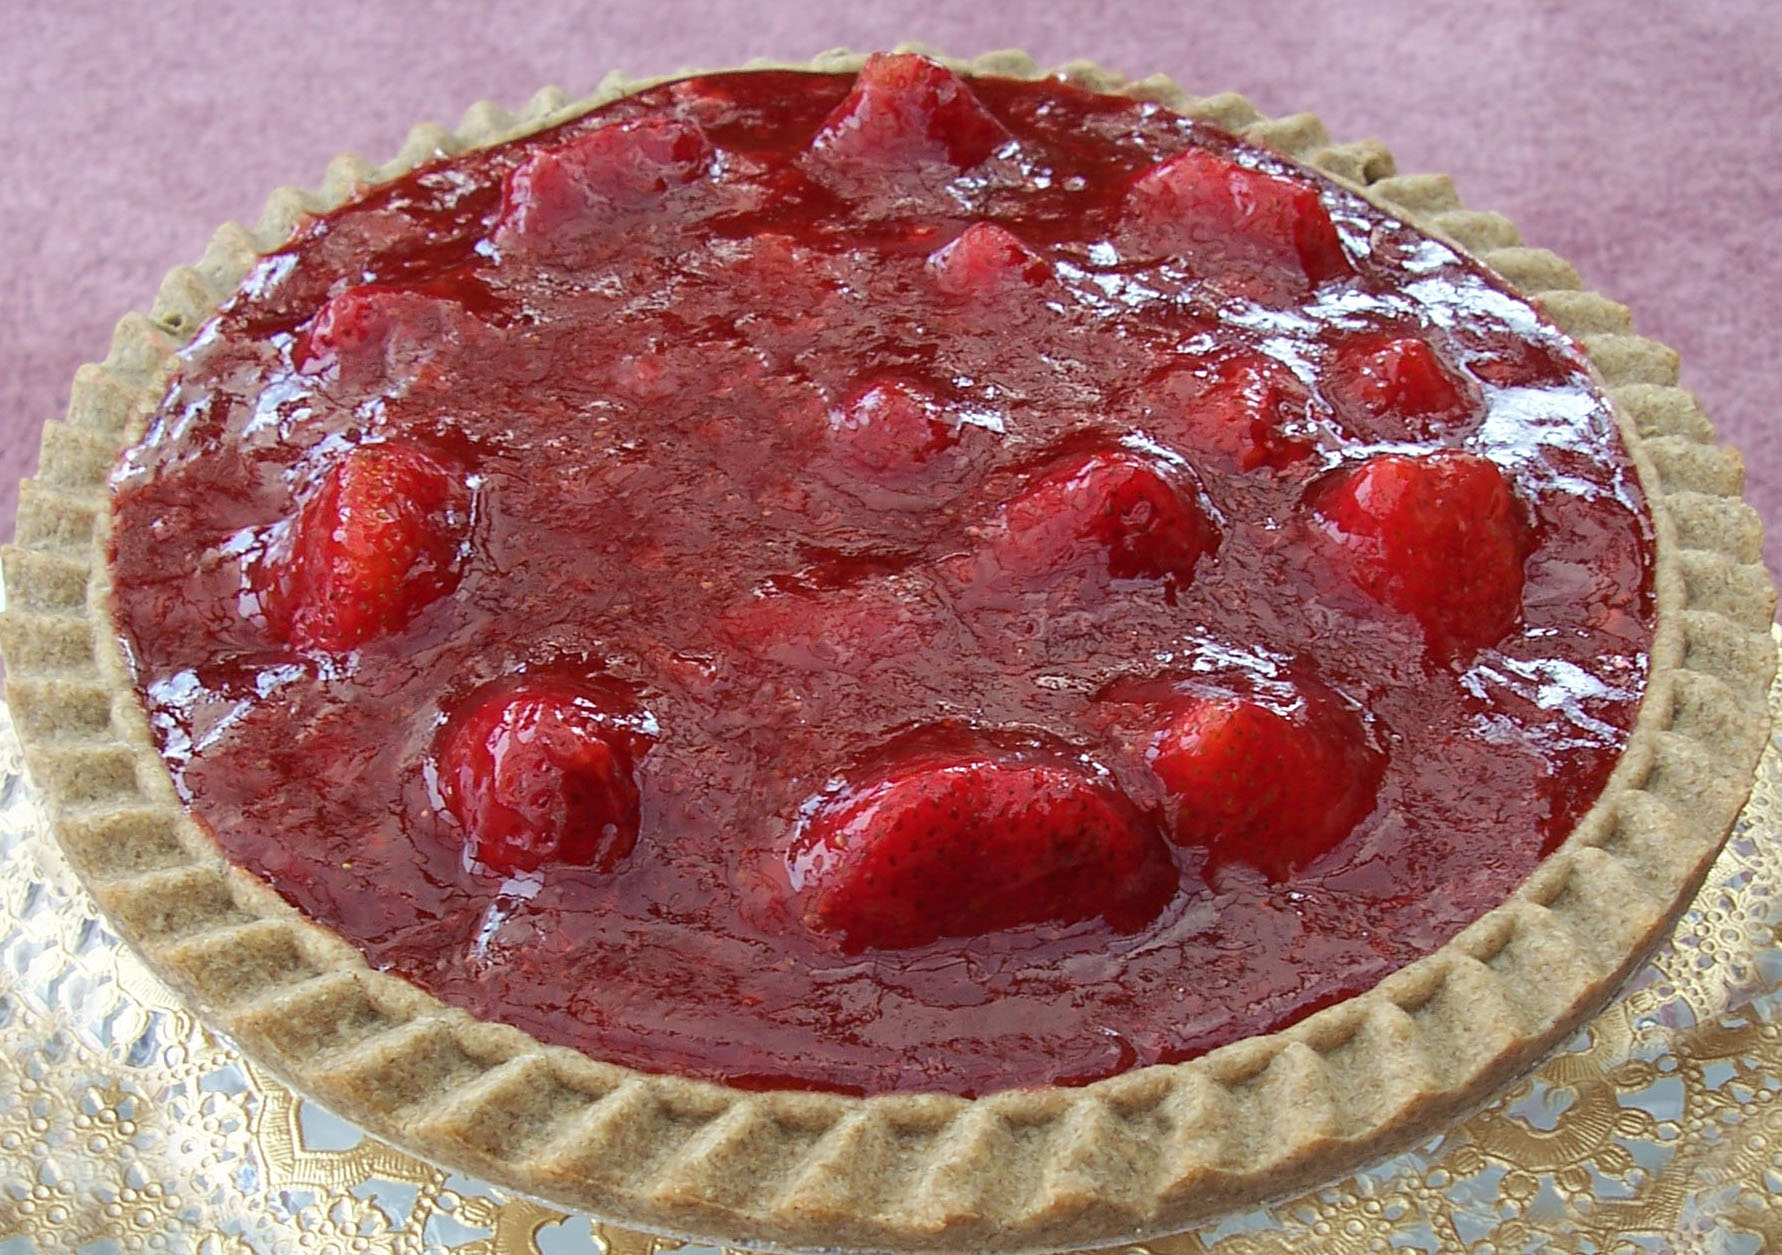 Vegan Recipe - Vegan Strawberry Pie